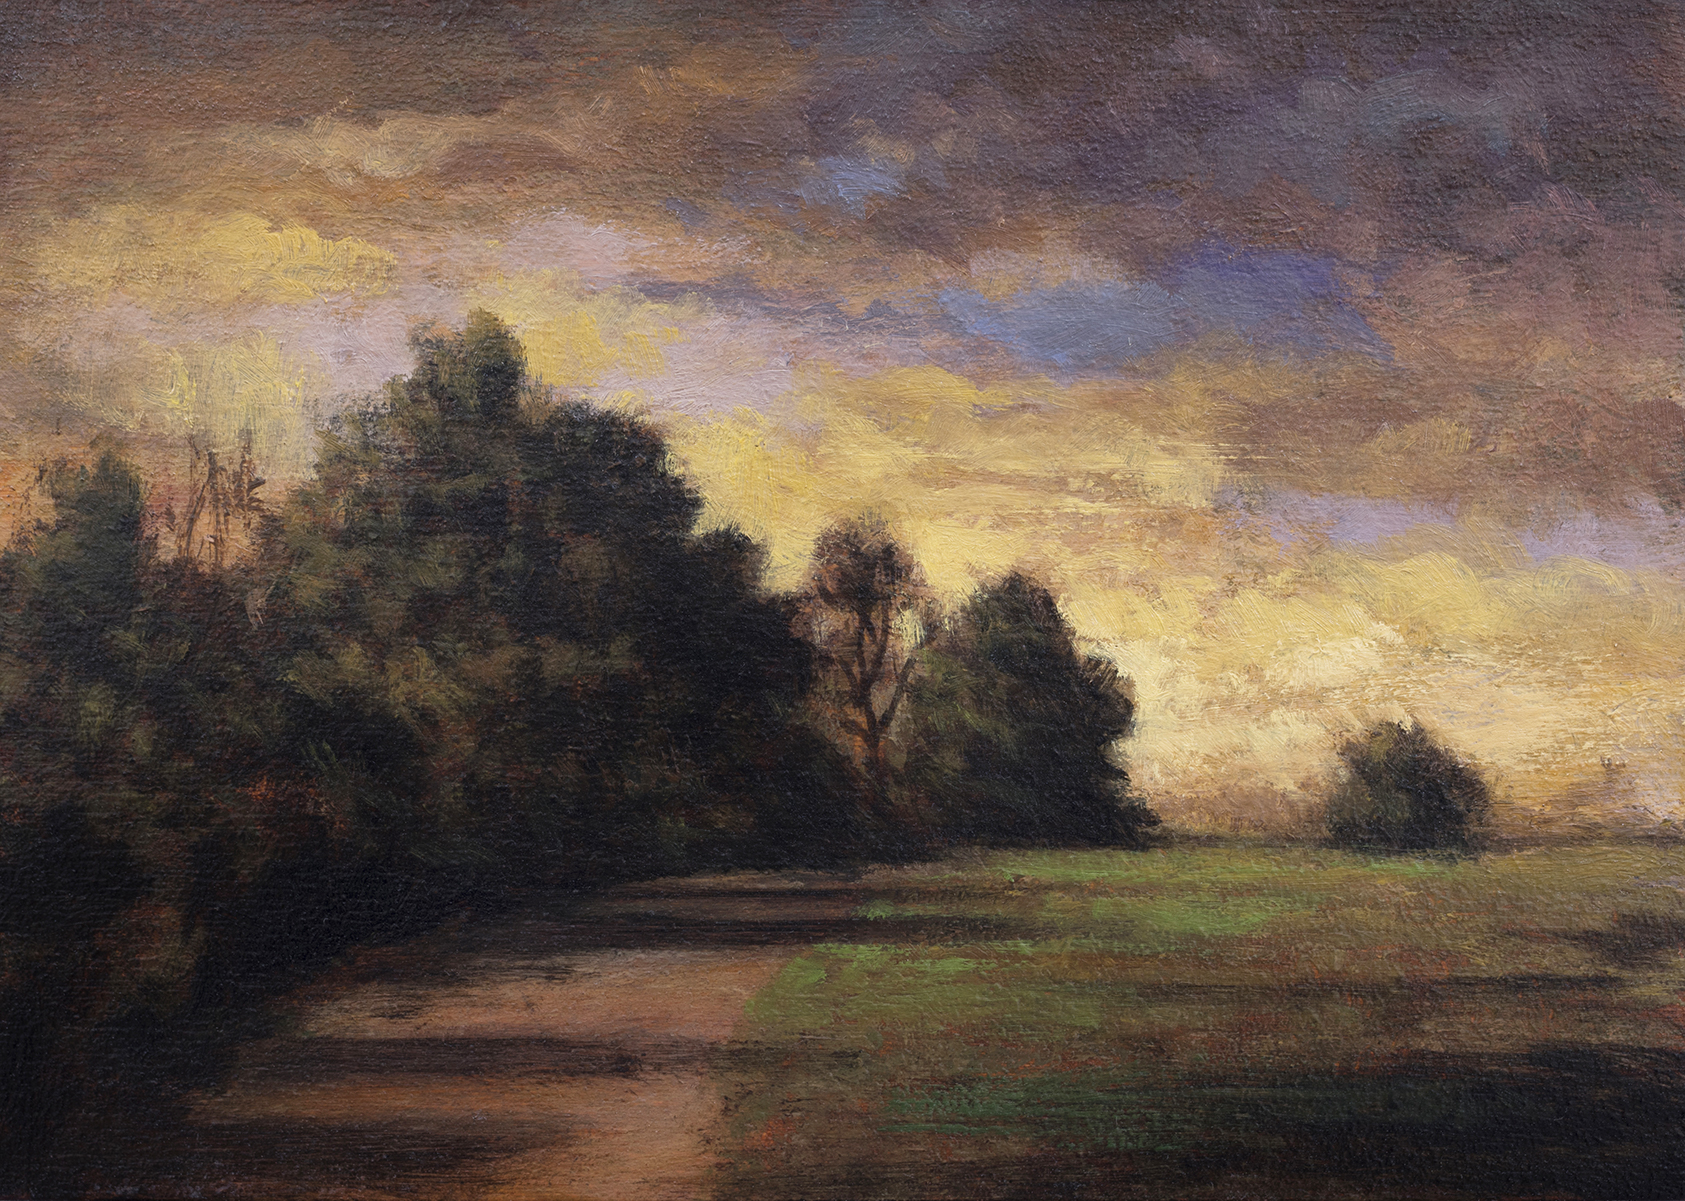 Over the Hill by M Francis McCarthy - 5x7 Oil on Wood Panel